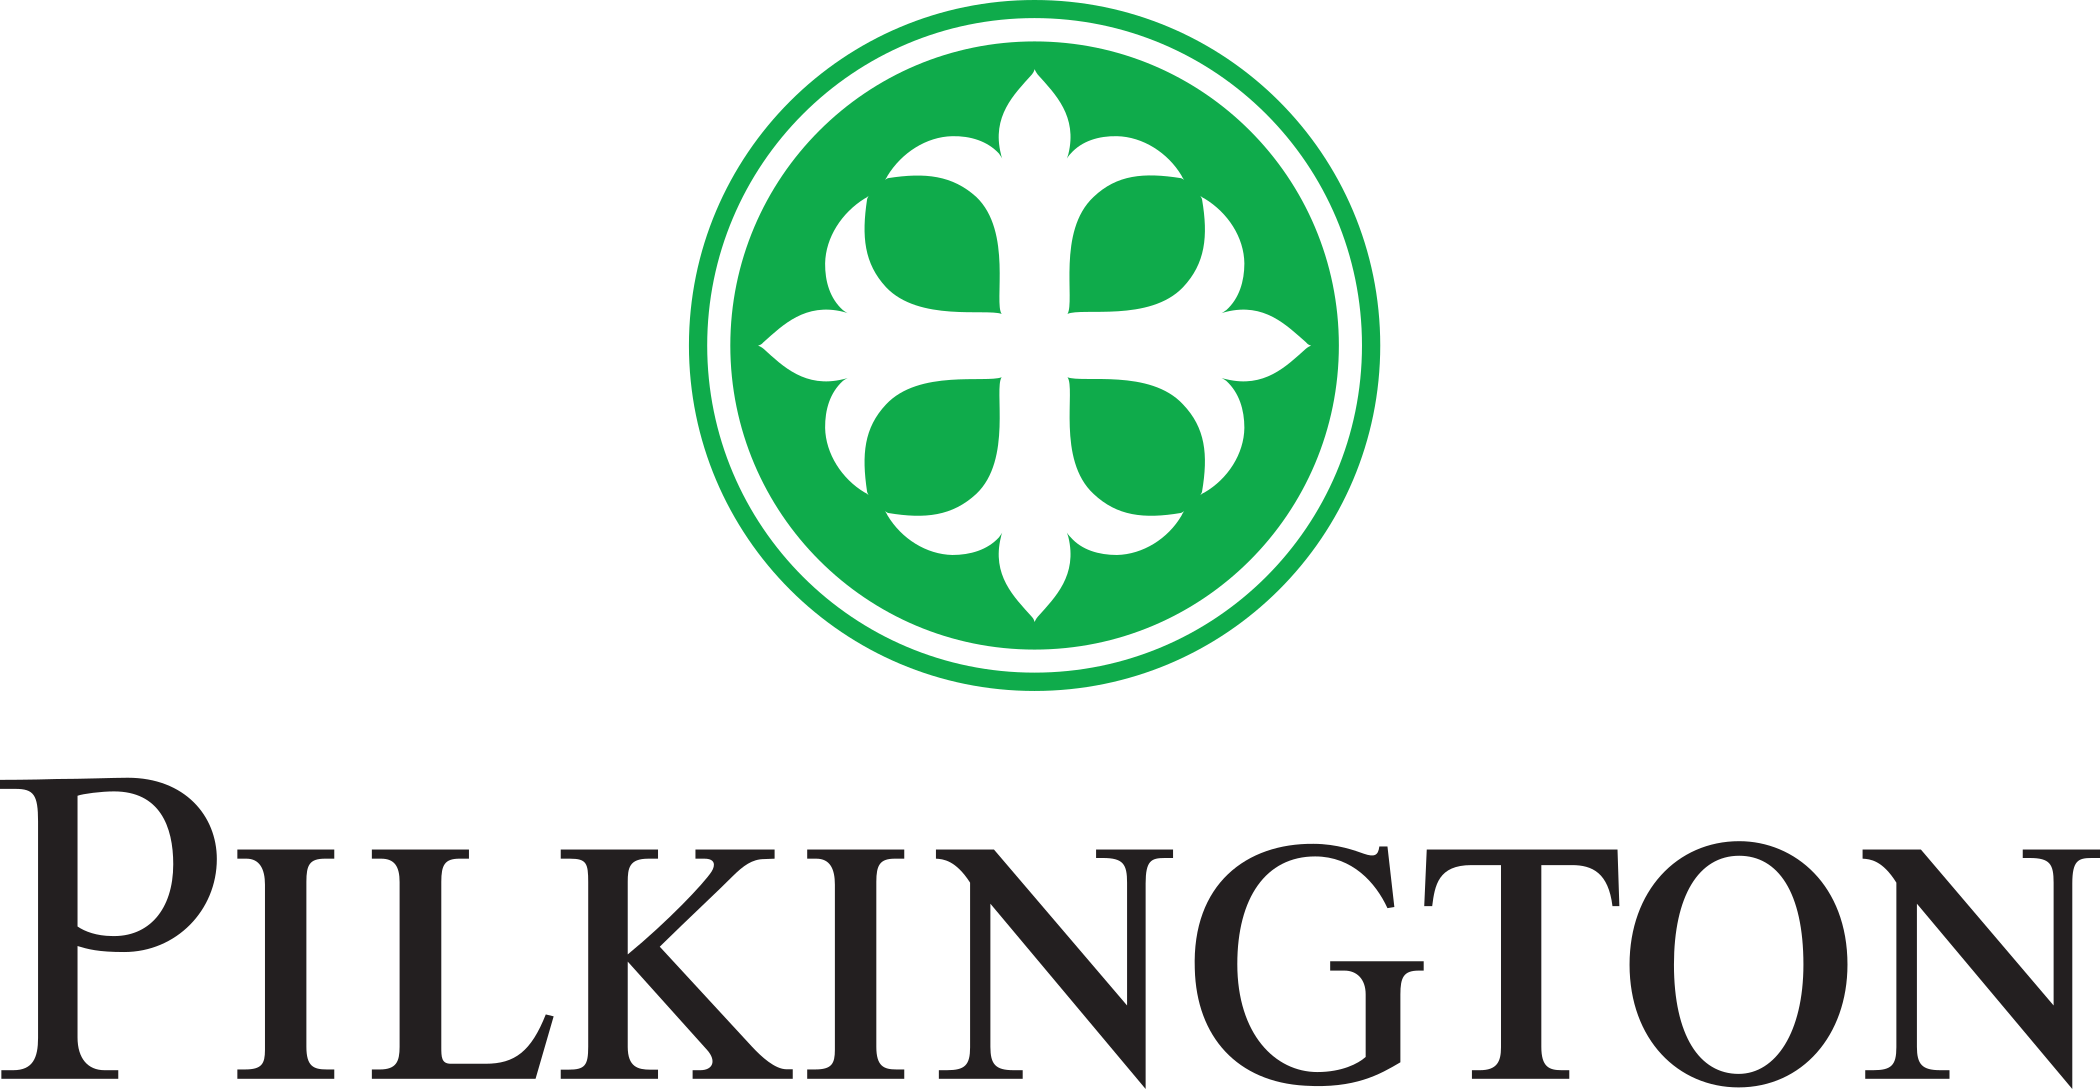 pilkington logo 3 - Pilkington Logo